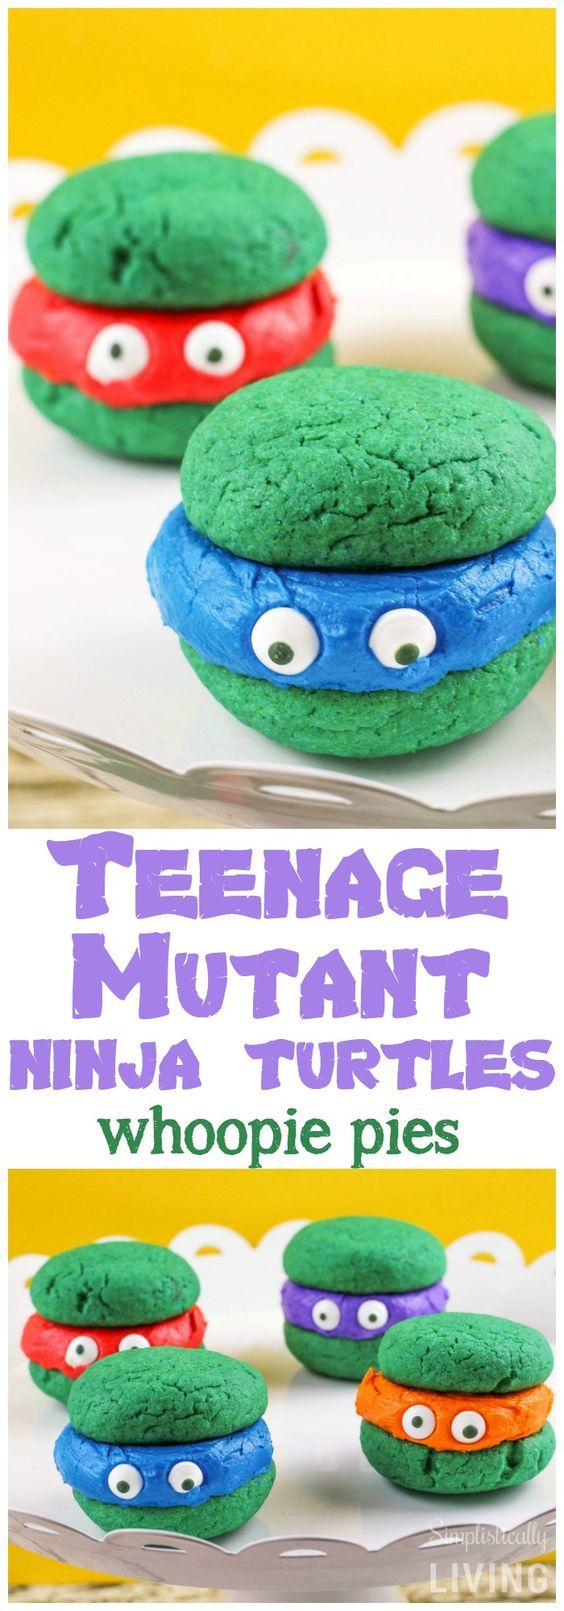 Teenage Mutant Ninja Turtle Whoopie Pies